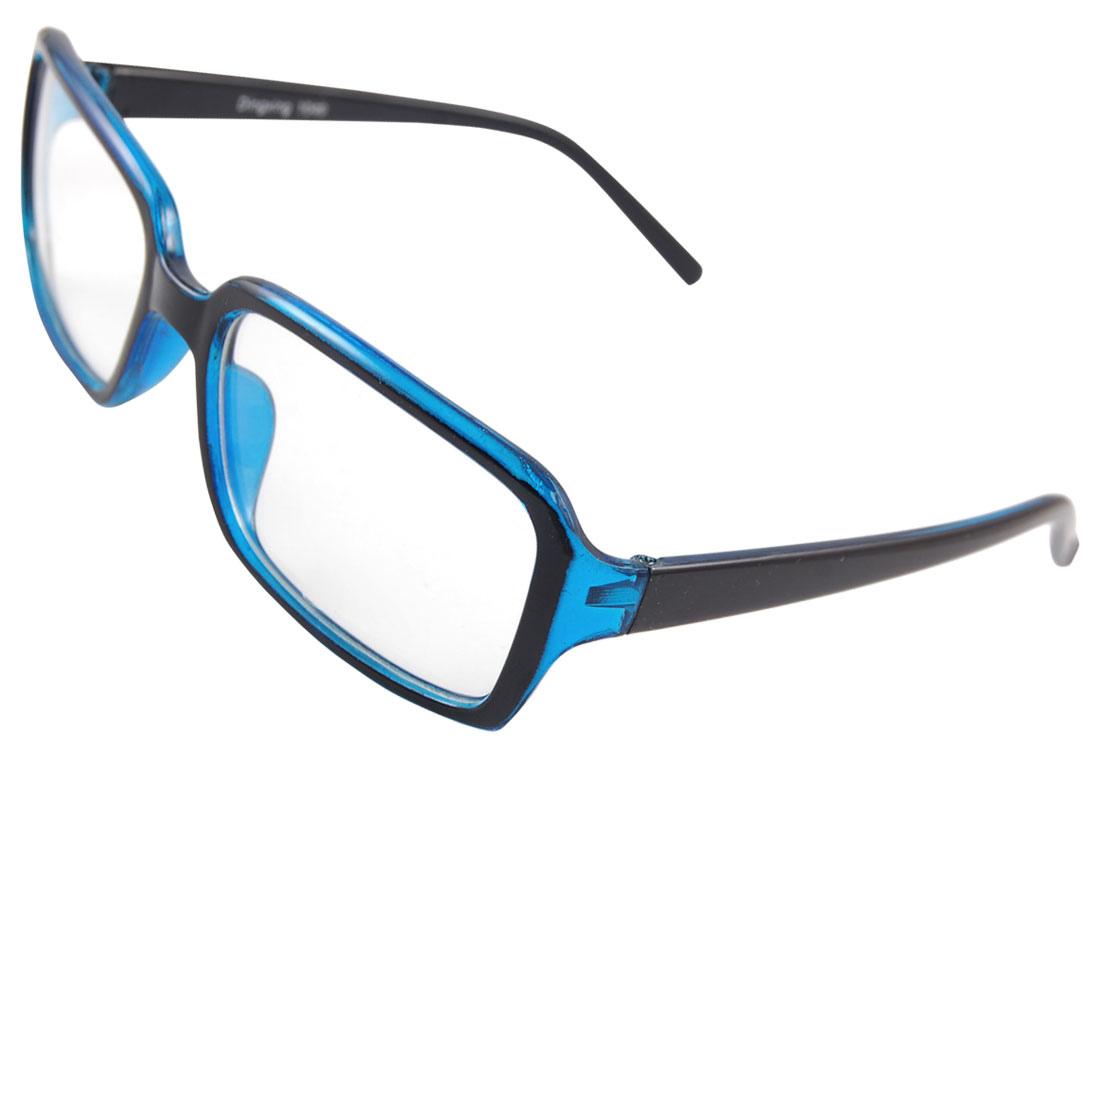 Plastic Full Frame Arms Clear Blue Plain Plano Eyeglasses for Women